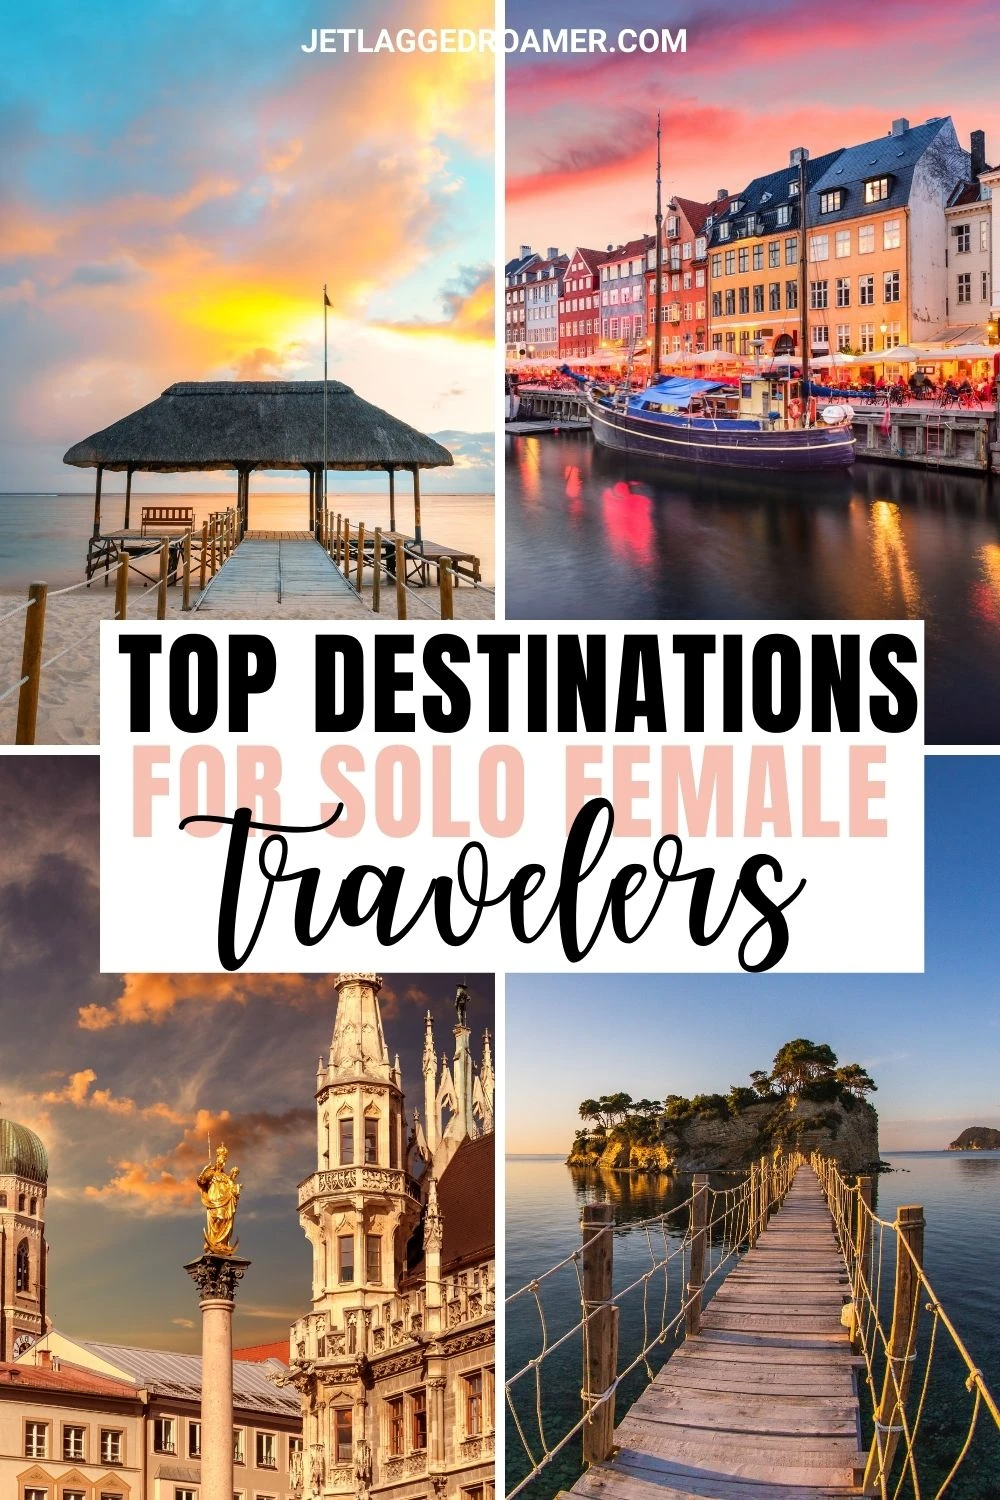 Top solo female travel destinations that are safe for the woman to travel alone. #femaletravel #solotravel